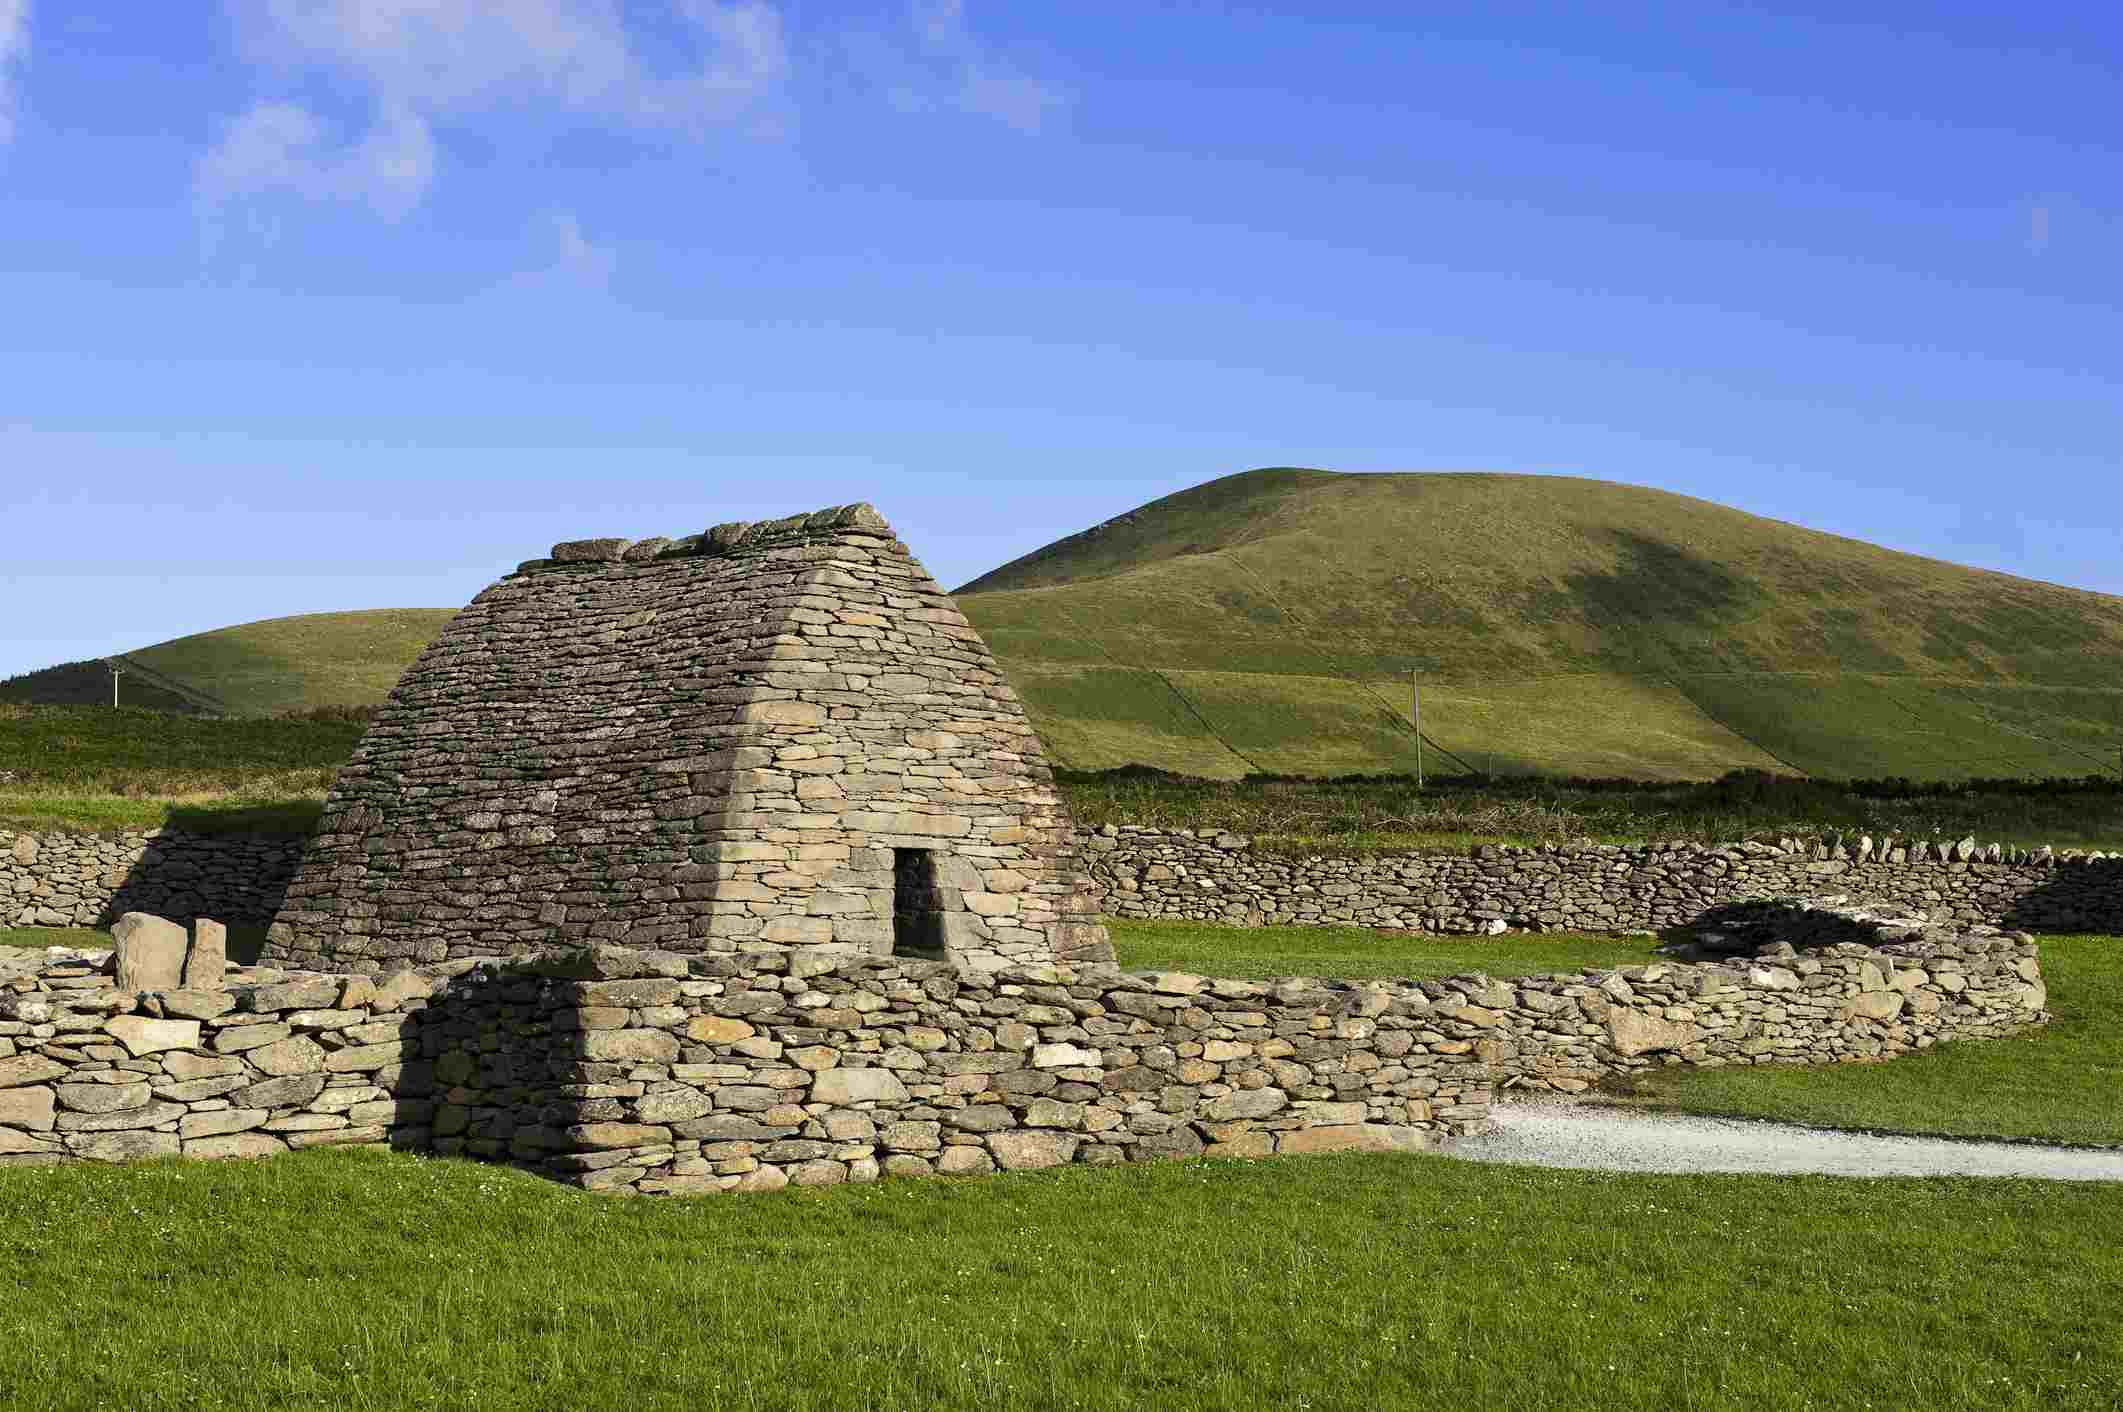 The keel-shaped stone structure of the Oratory of Gallarus in Kerry County, Dingle Peninsula,